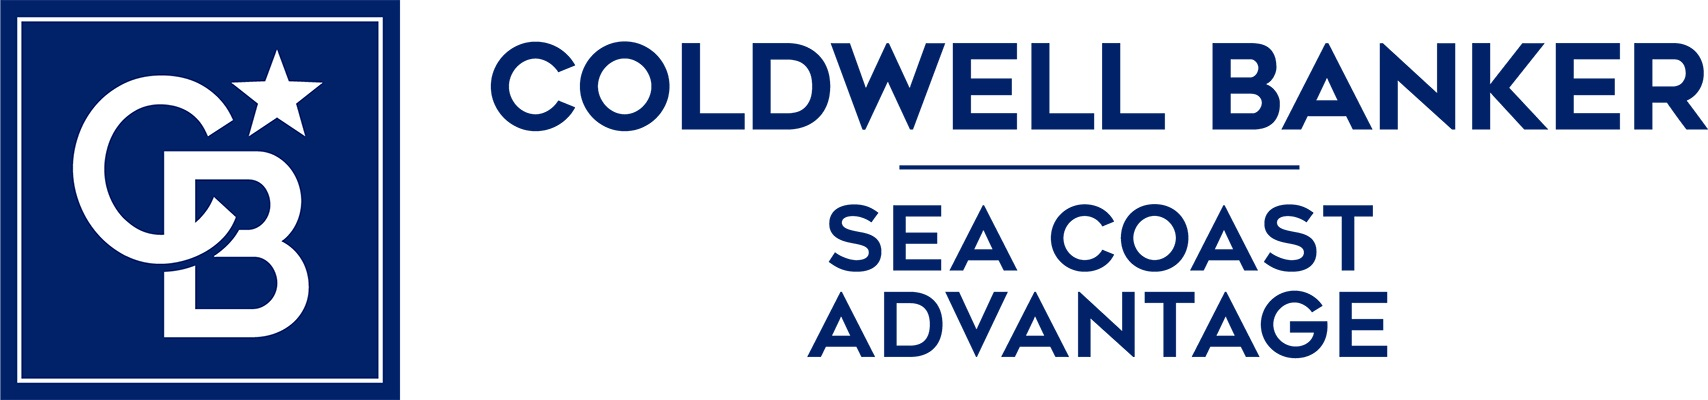 Katie Jones - Coldwell Banker Sea Coast Advantage Realty